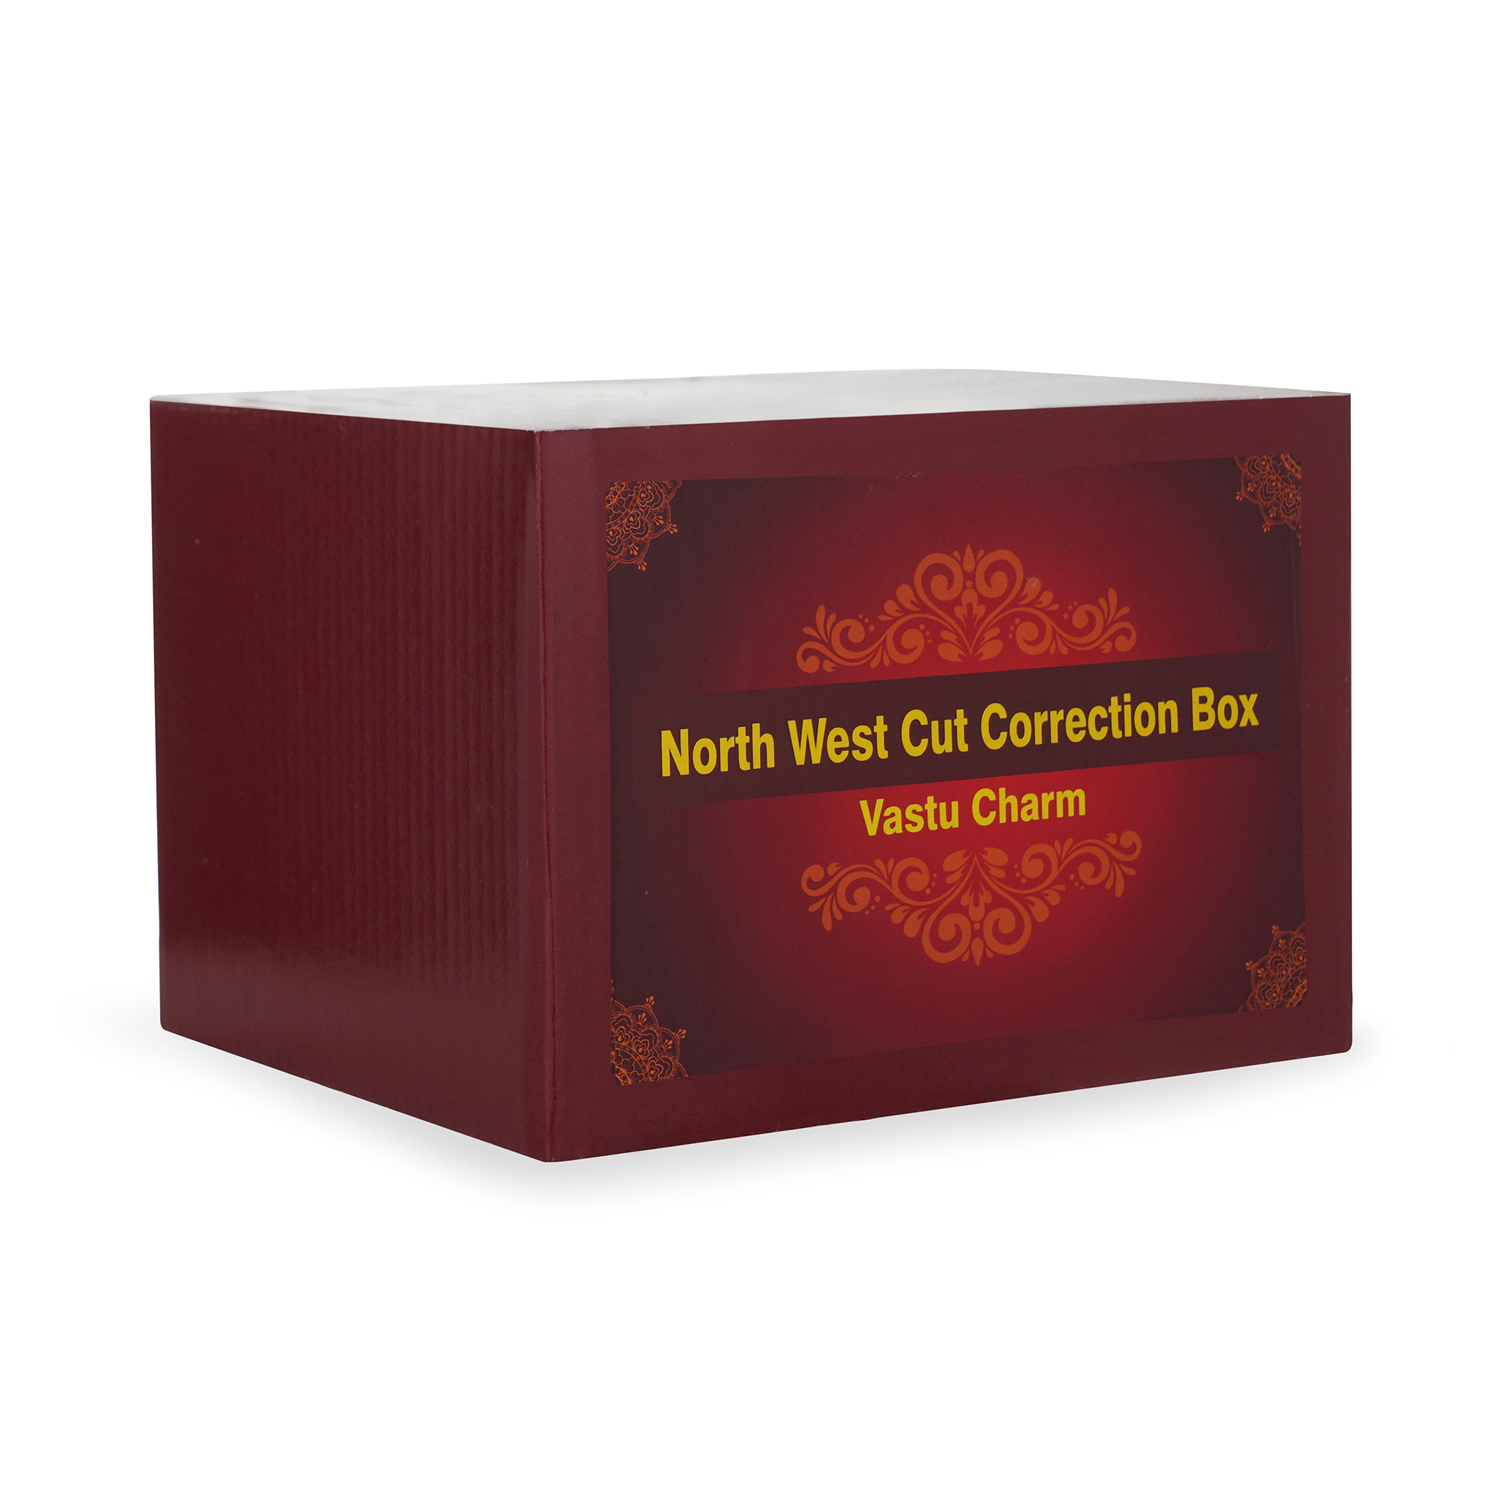 North West Cut Correction Box